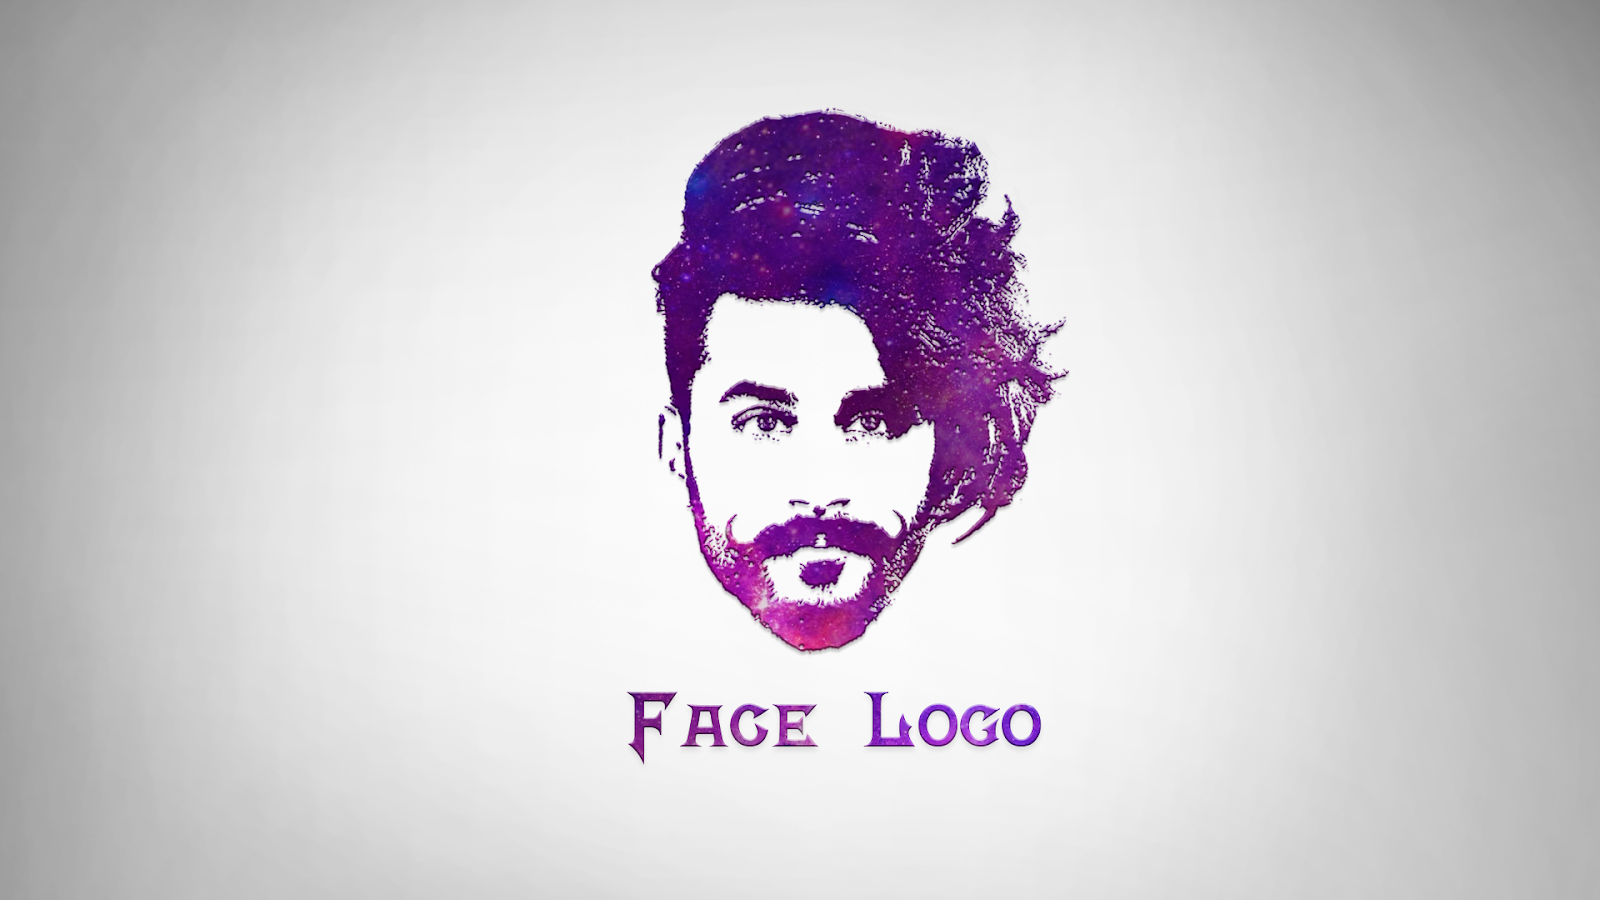 how to create face logo in photoshop,iLLPHOCORPHICS, Photoshop logo design, logo design, face logo, logo design tutorial, photoshop tutorial, illphocorphics tutorial